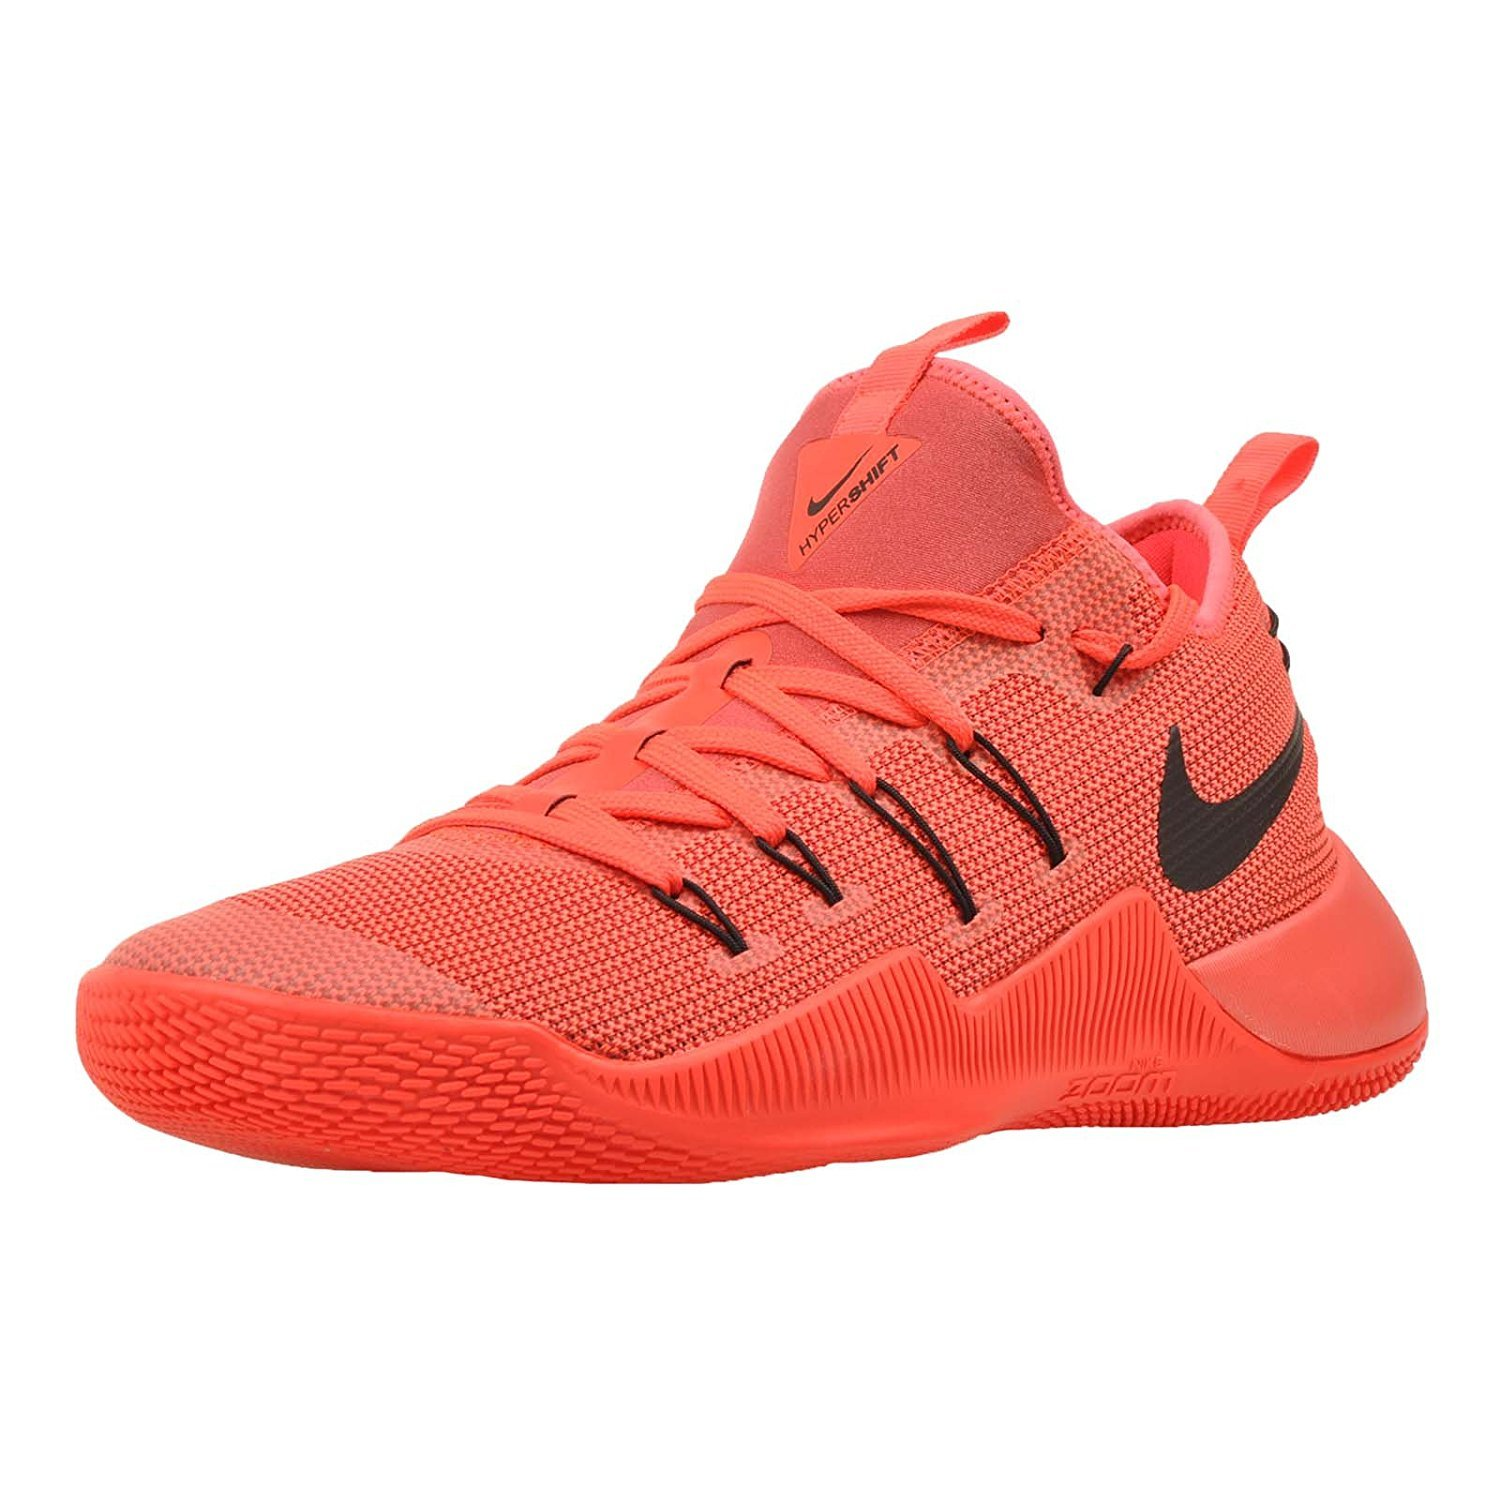 new product 15a41 9333b NIKE HYPERSHIFT BASKETBALL SHOES (10 UK) Buy Online at Low Prices in India  ...